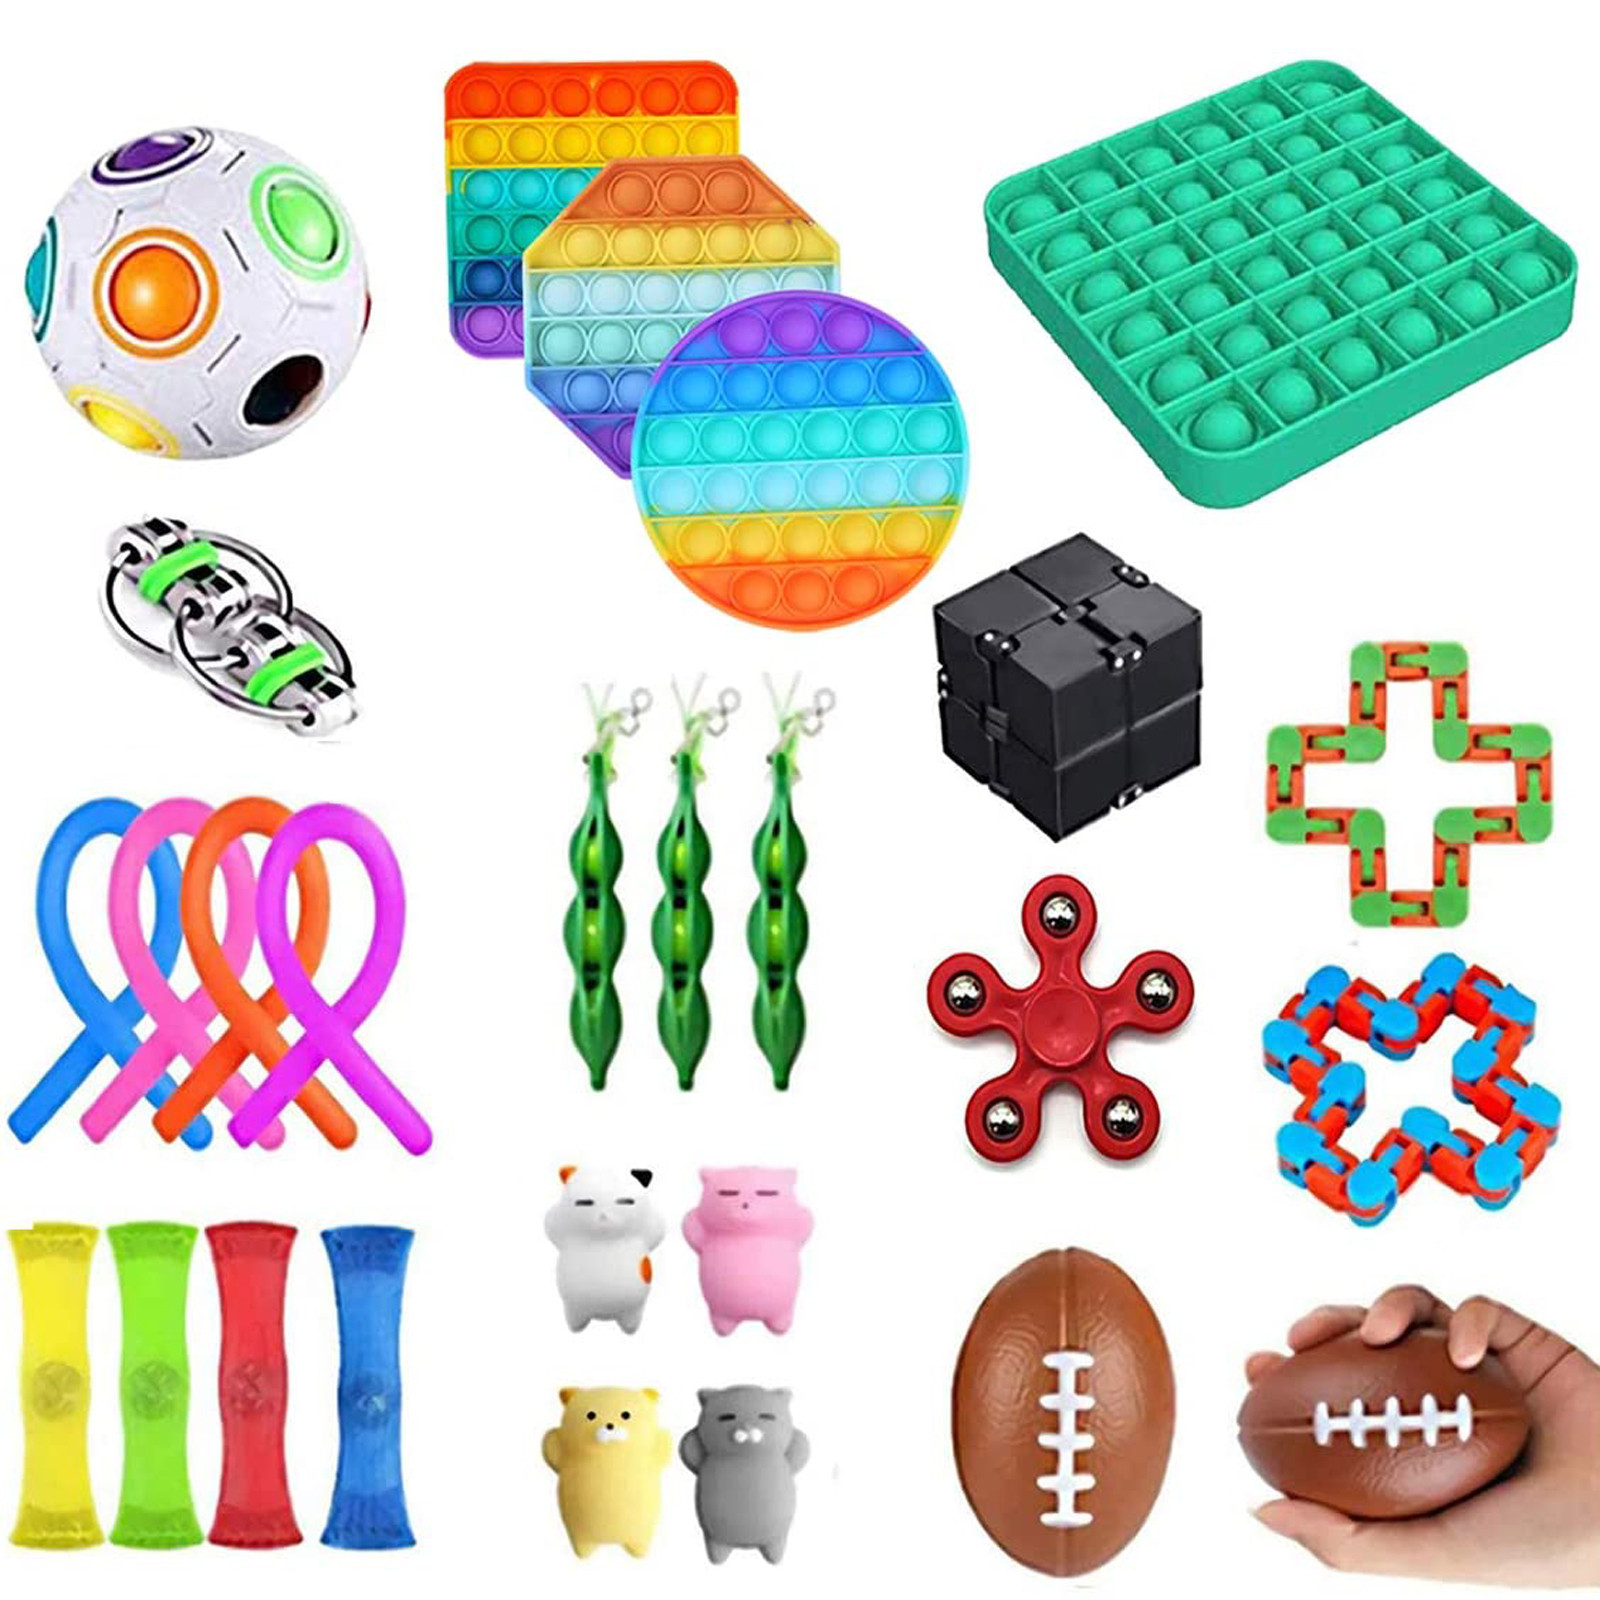 Antistress Fidget Toys Push Bubble Popit Squeeze Sensory Stress Reliever Autism Needs Adult Anxiety Focus Educational Toy Kids img3